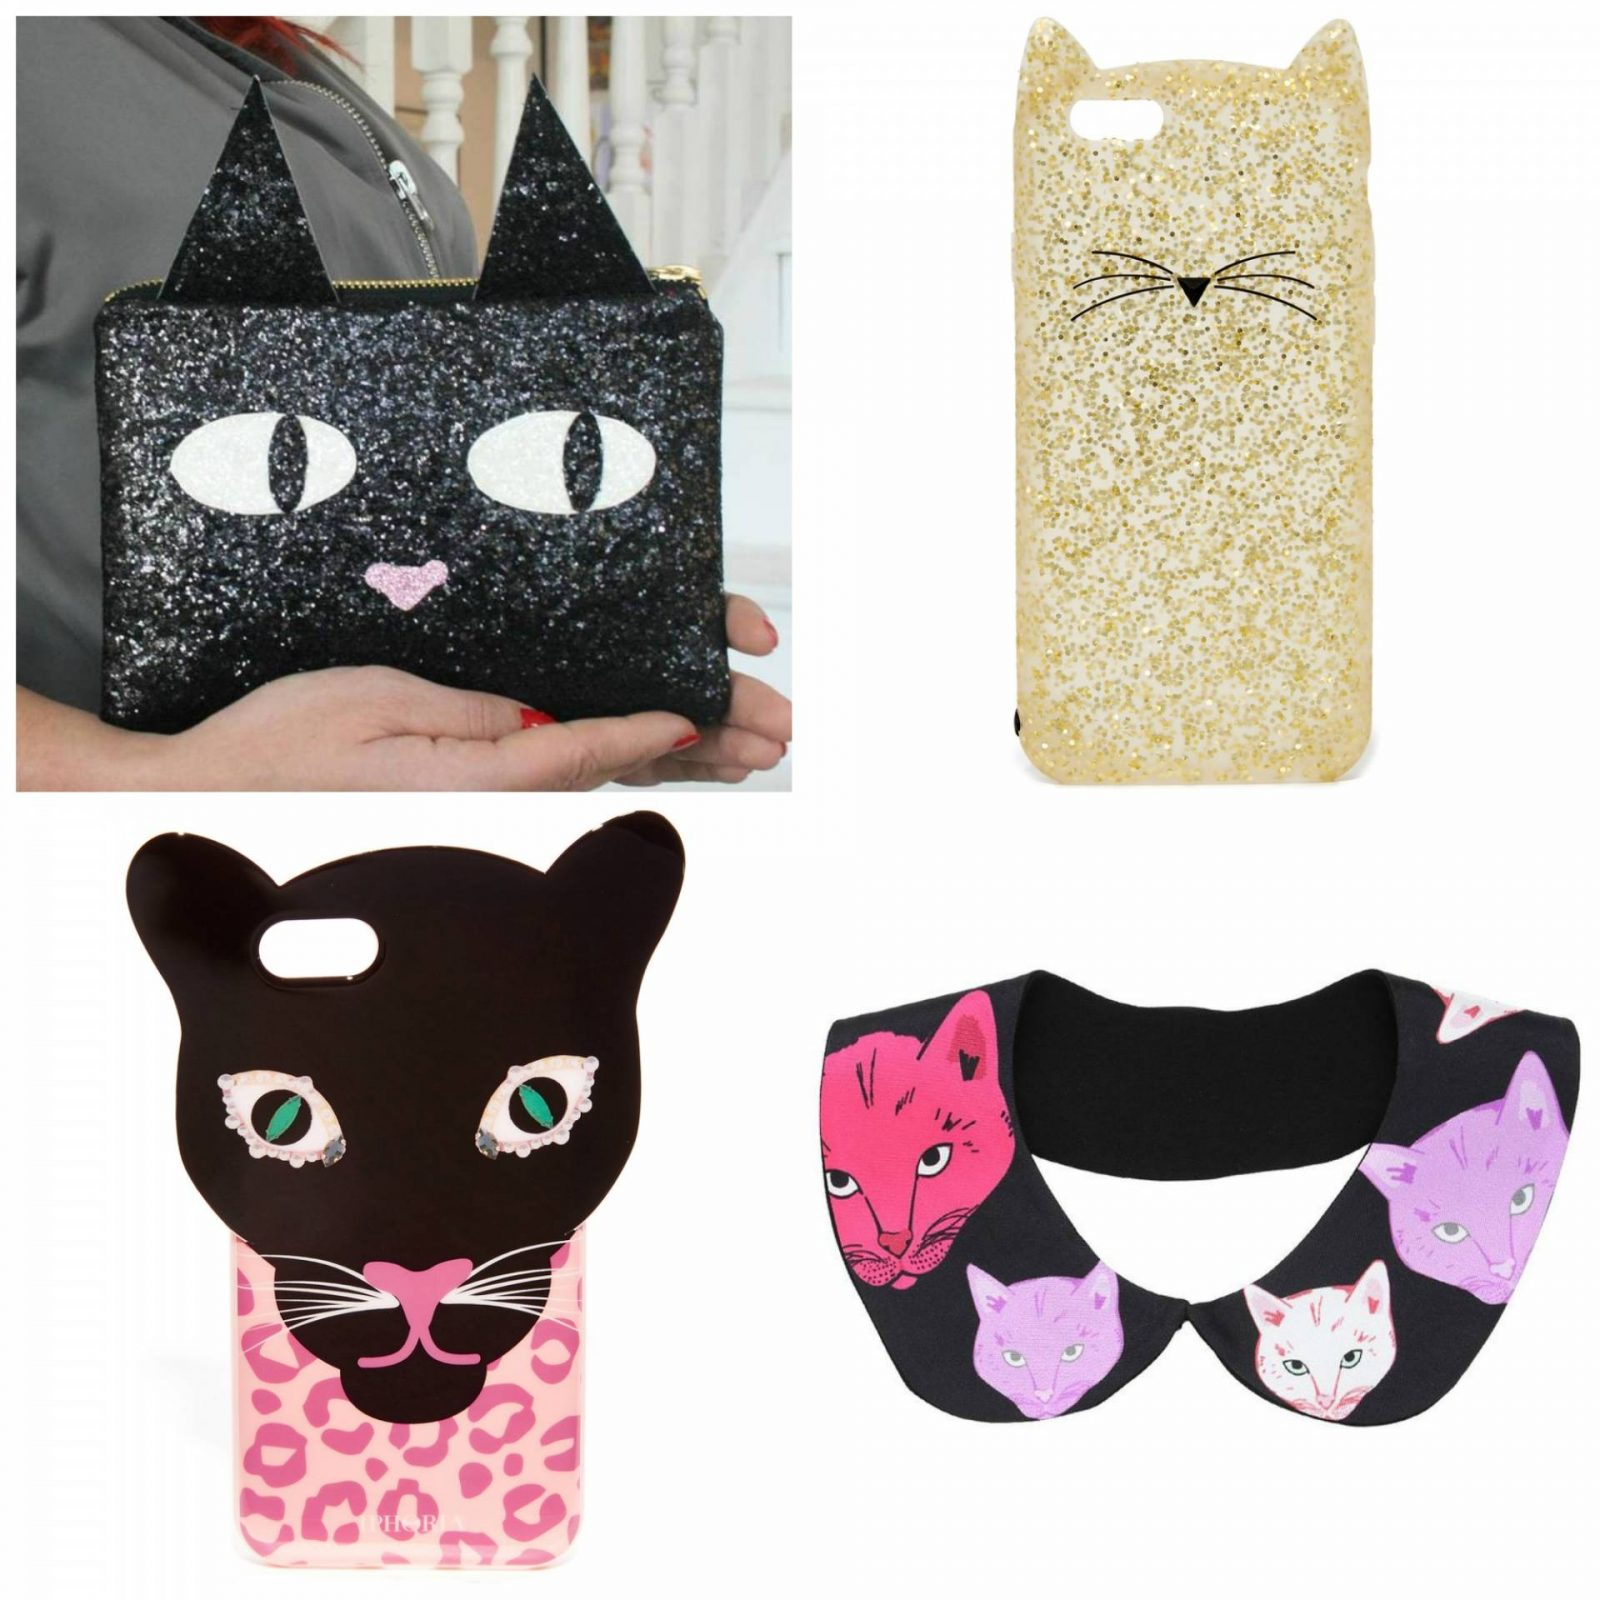 Mother's Day Gift Ideas Inspired by Nature cats